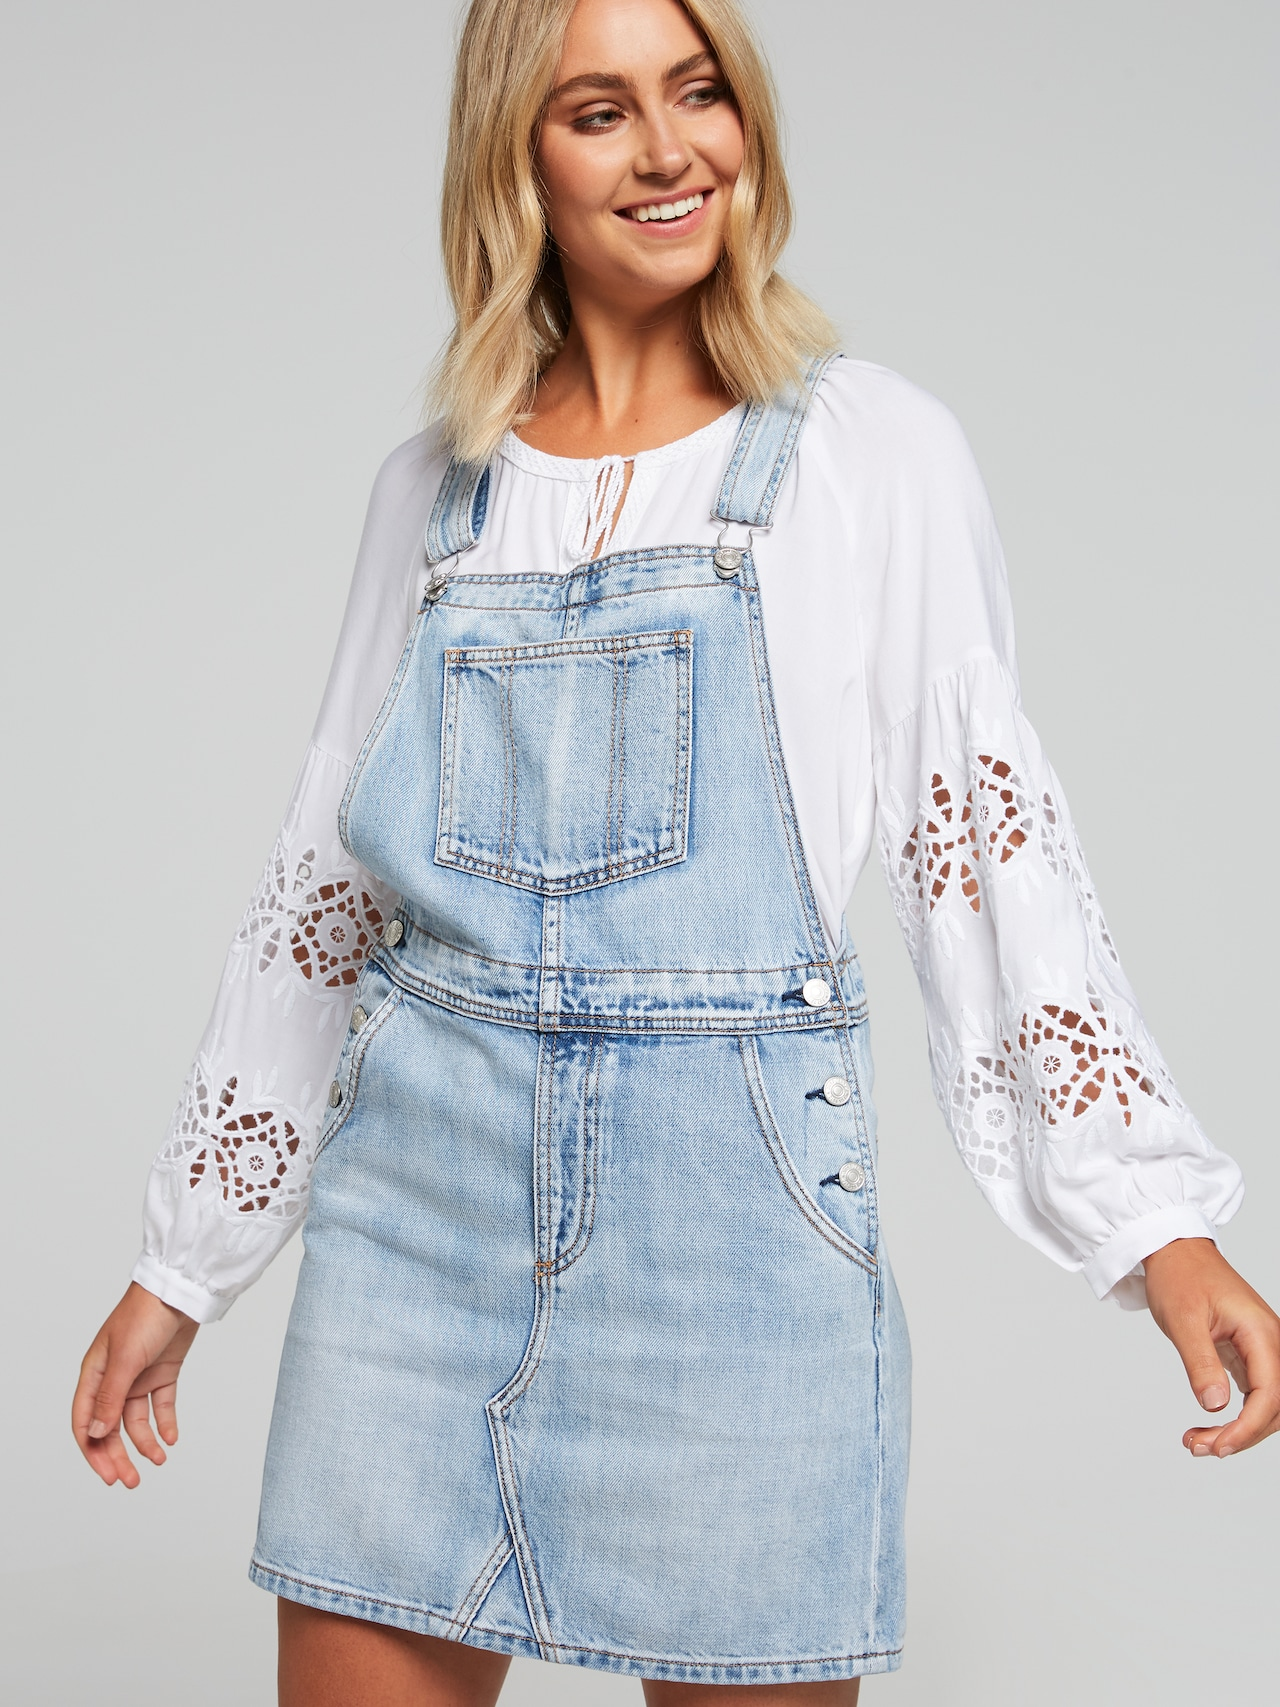 9abba81b28 Evie Vintage Pinafore - Just Jeans Online